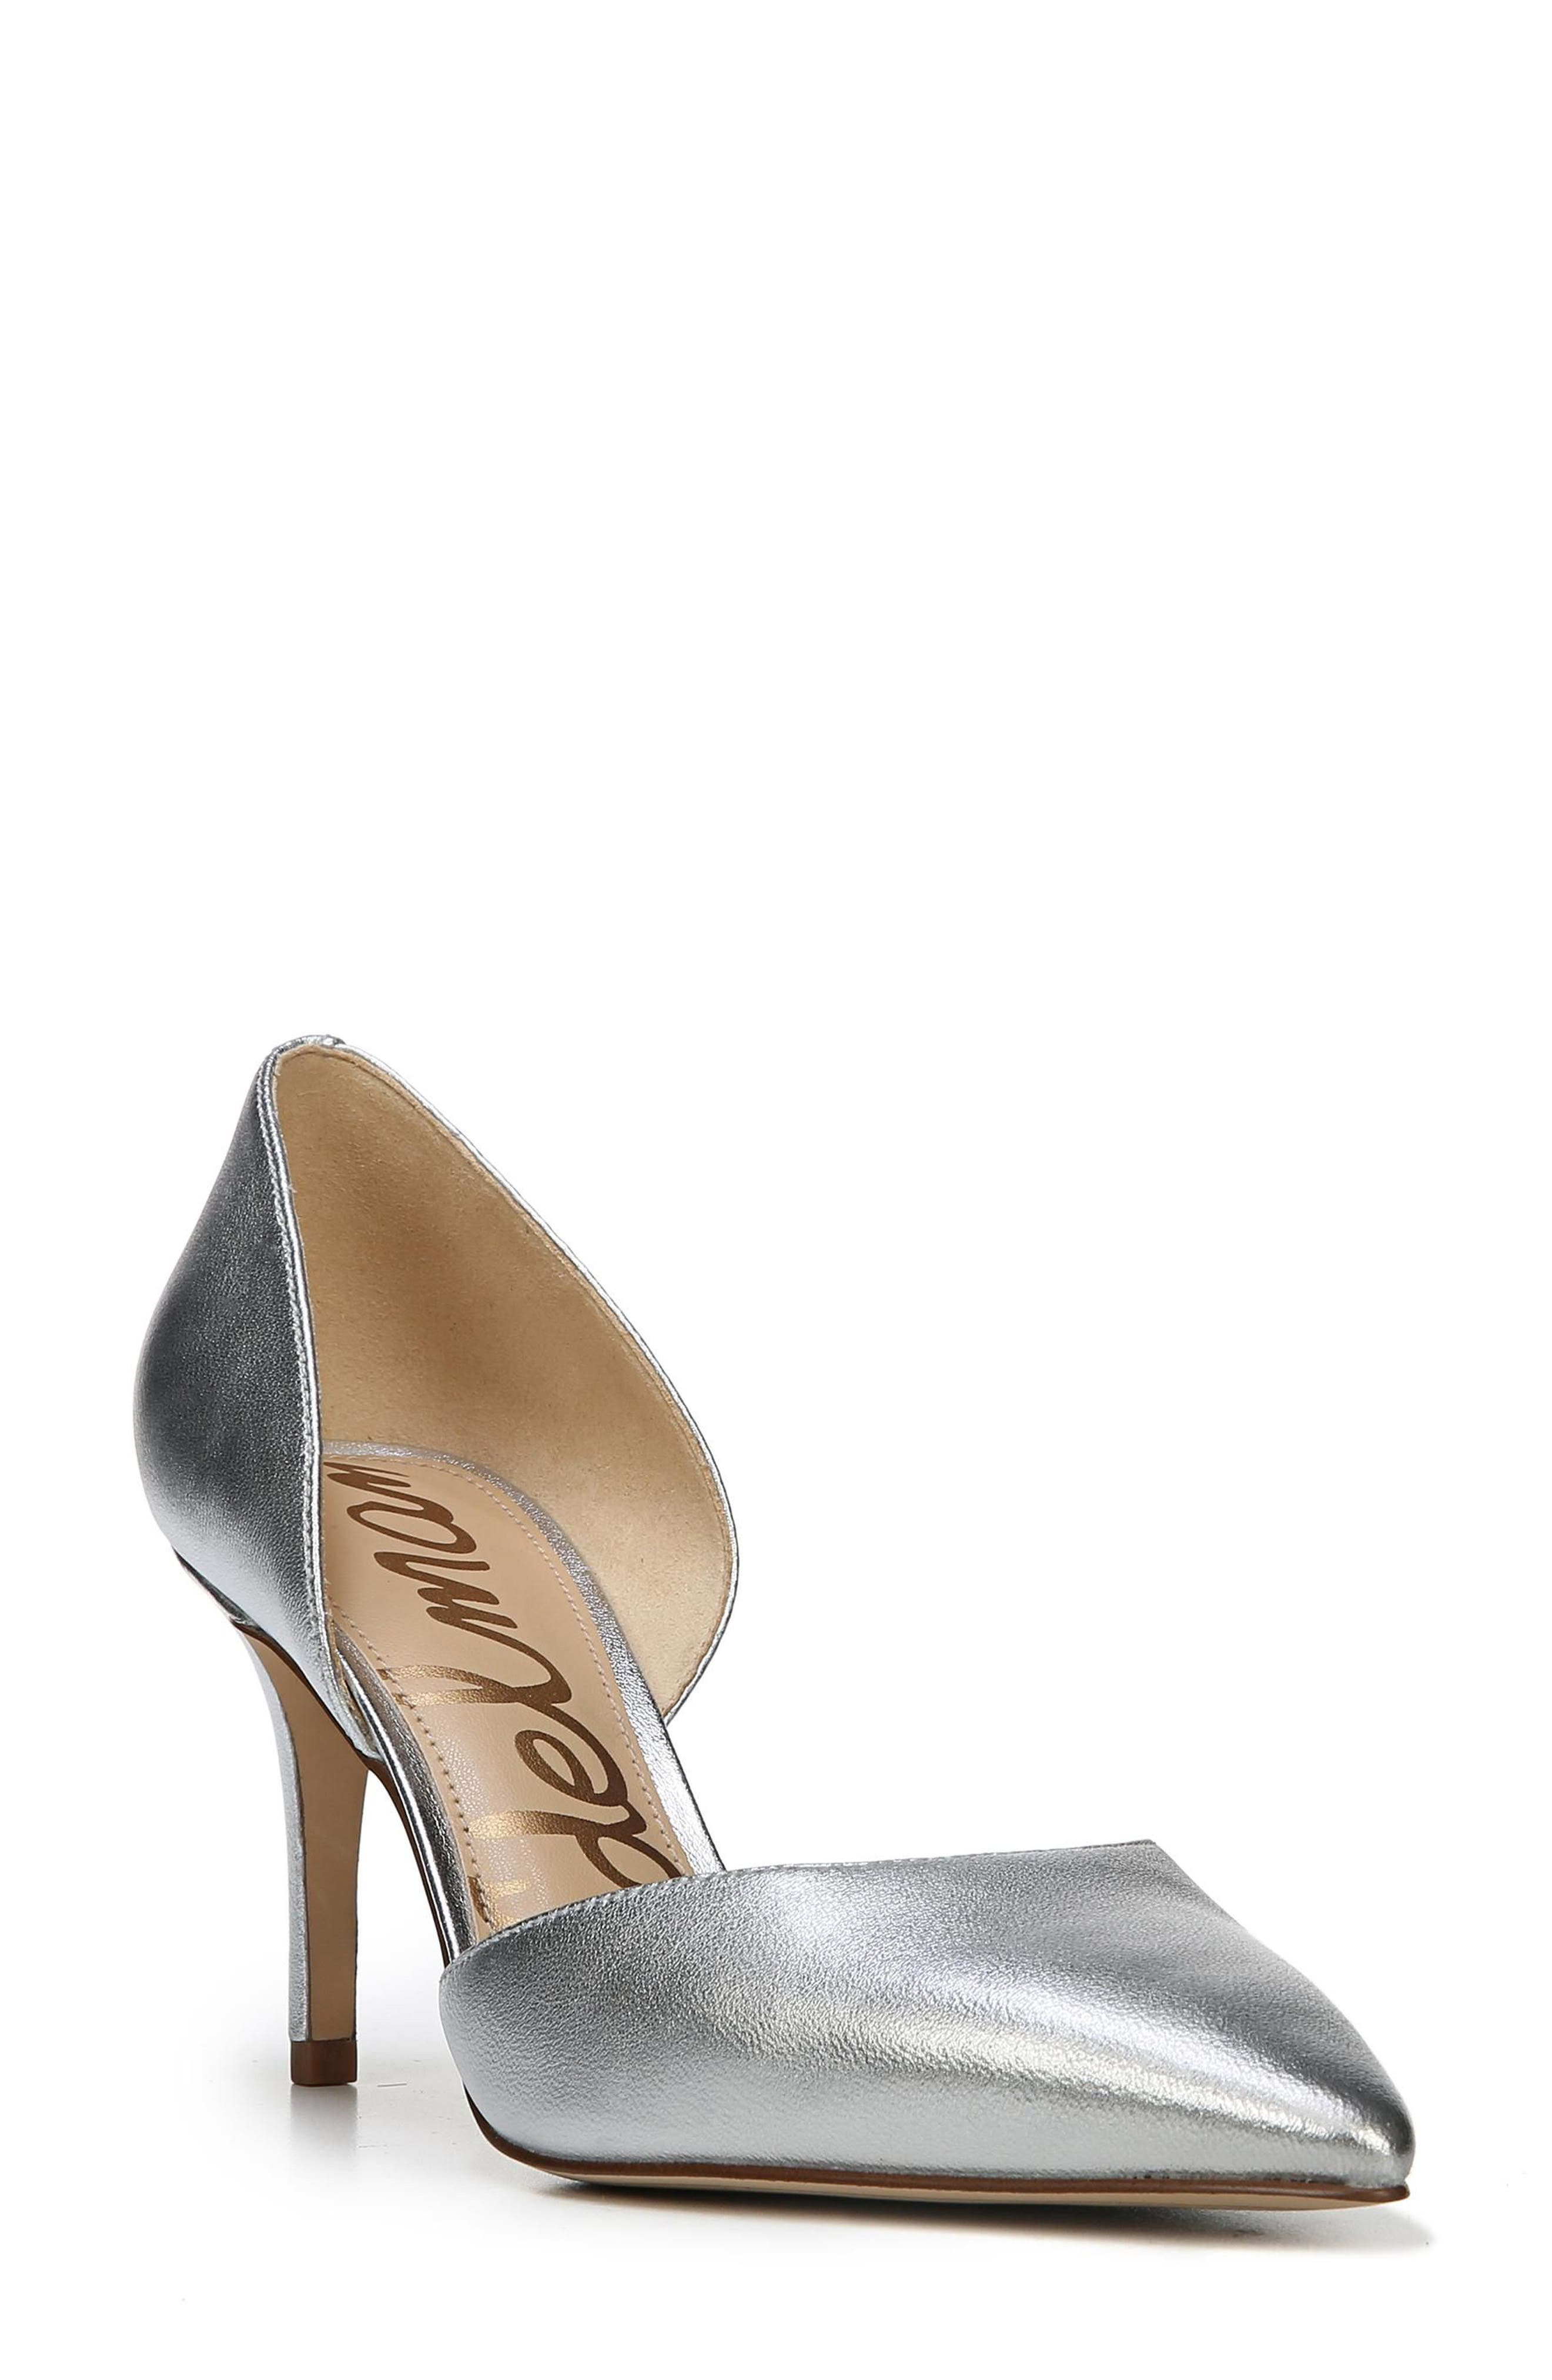 'Telsa' d'Orsay Pointy Toe Pump,                         Main,                         color, Soft Silver Leather